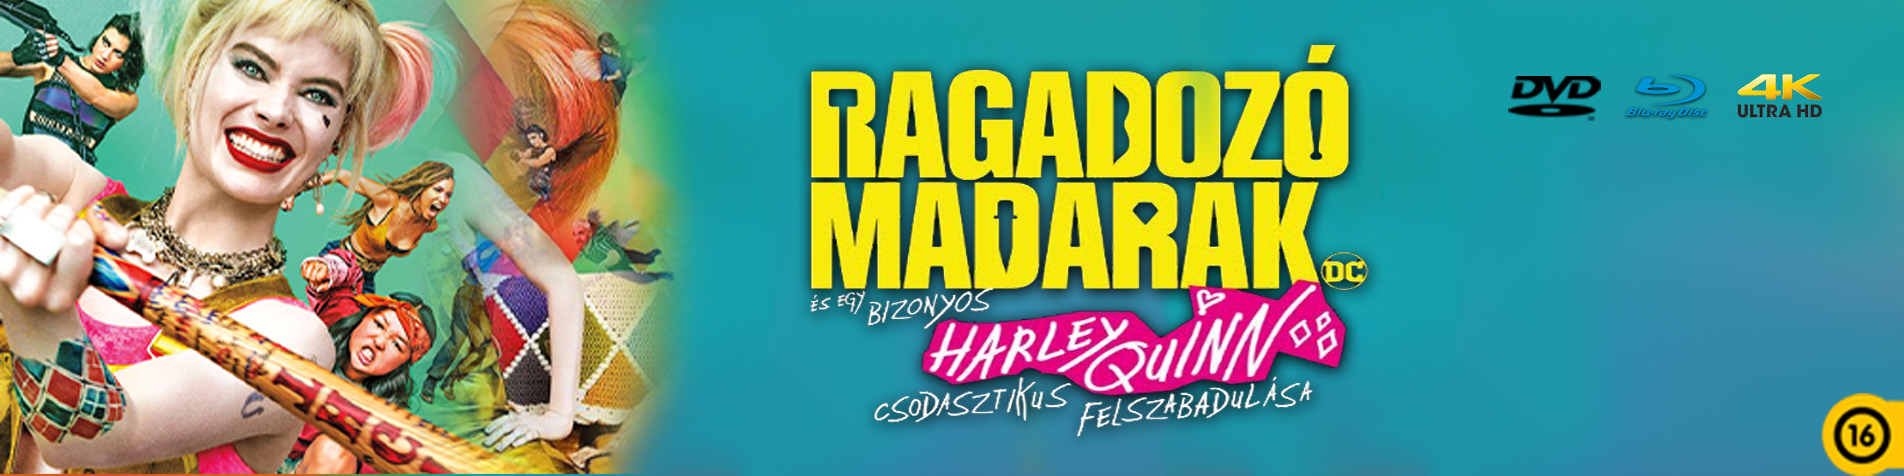 Ragadozó - Bluray